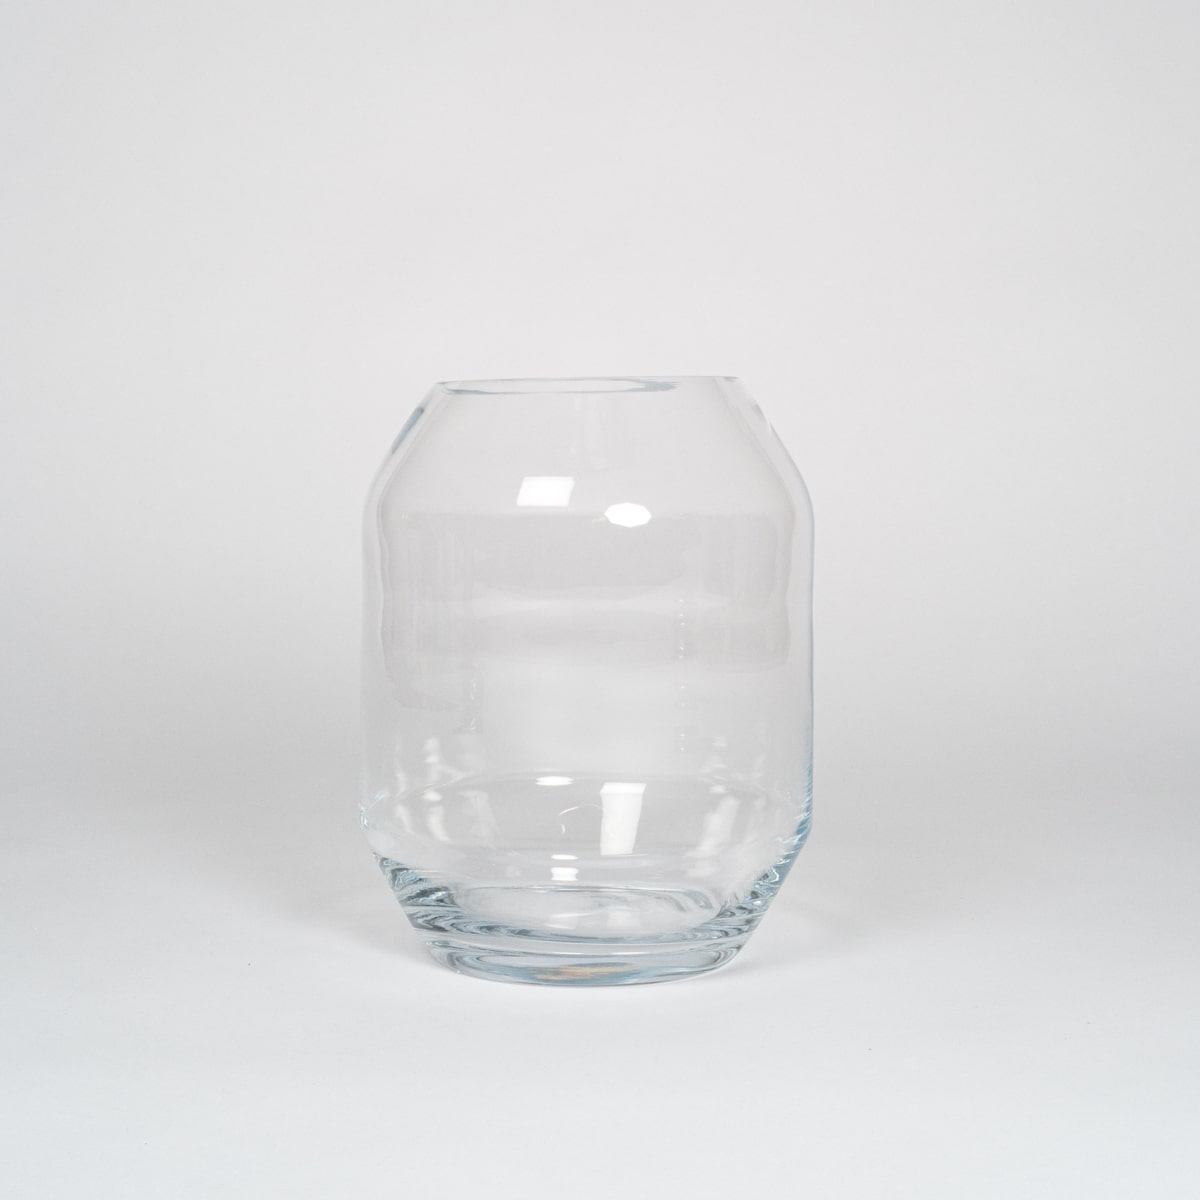 Bloom Flower Delivery | Clear Glass Geometric Vase & Storm Lantern